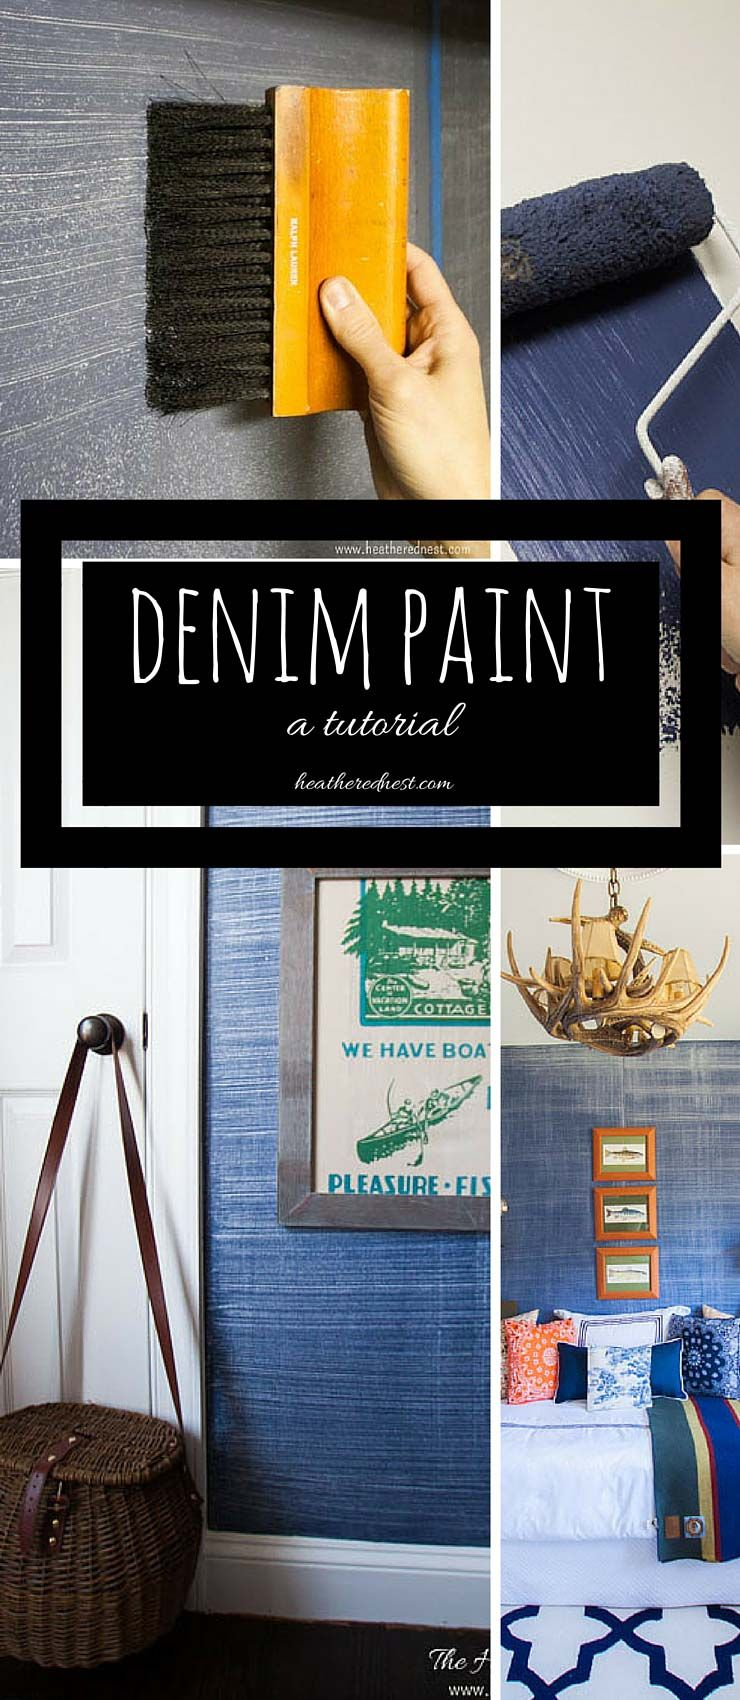 Ideas : Denim faux finish for walls! GREAT paint idea to add texture and interest for an…